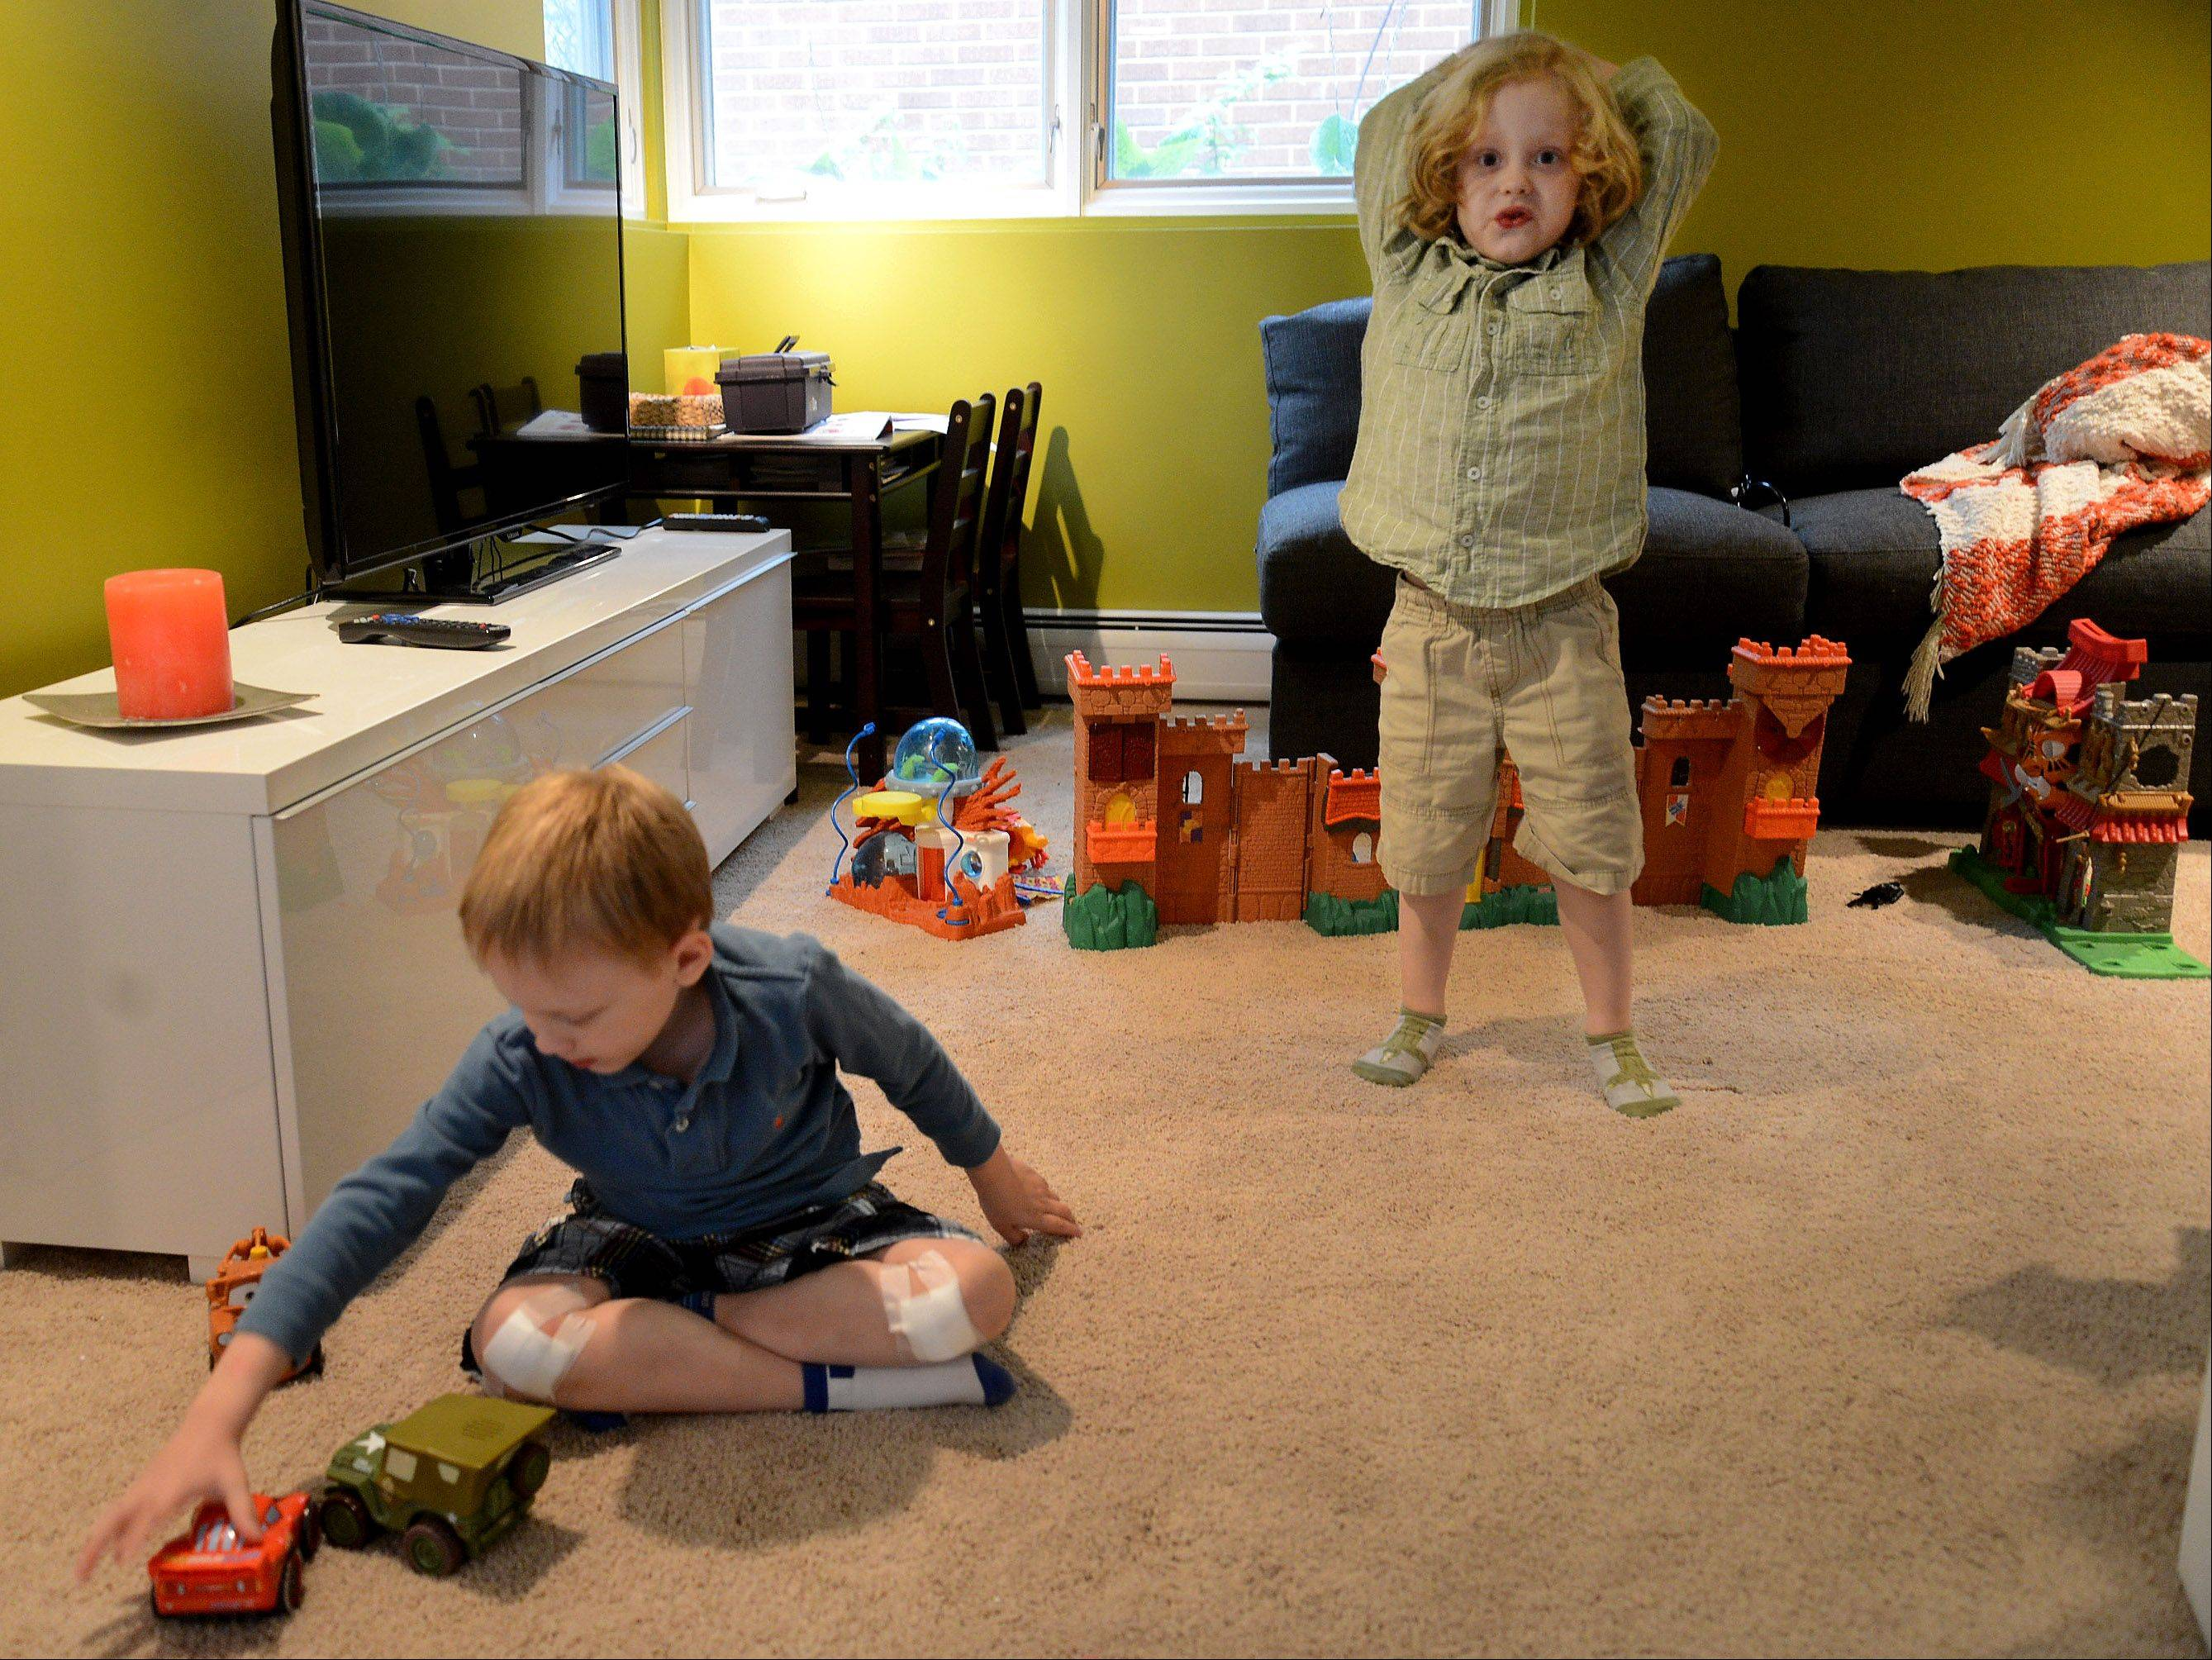 Luke, left, and Jake Swanson play in their playroom.